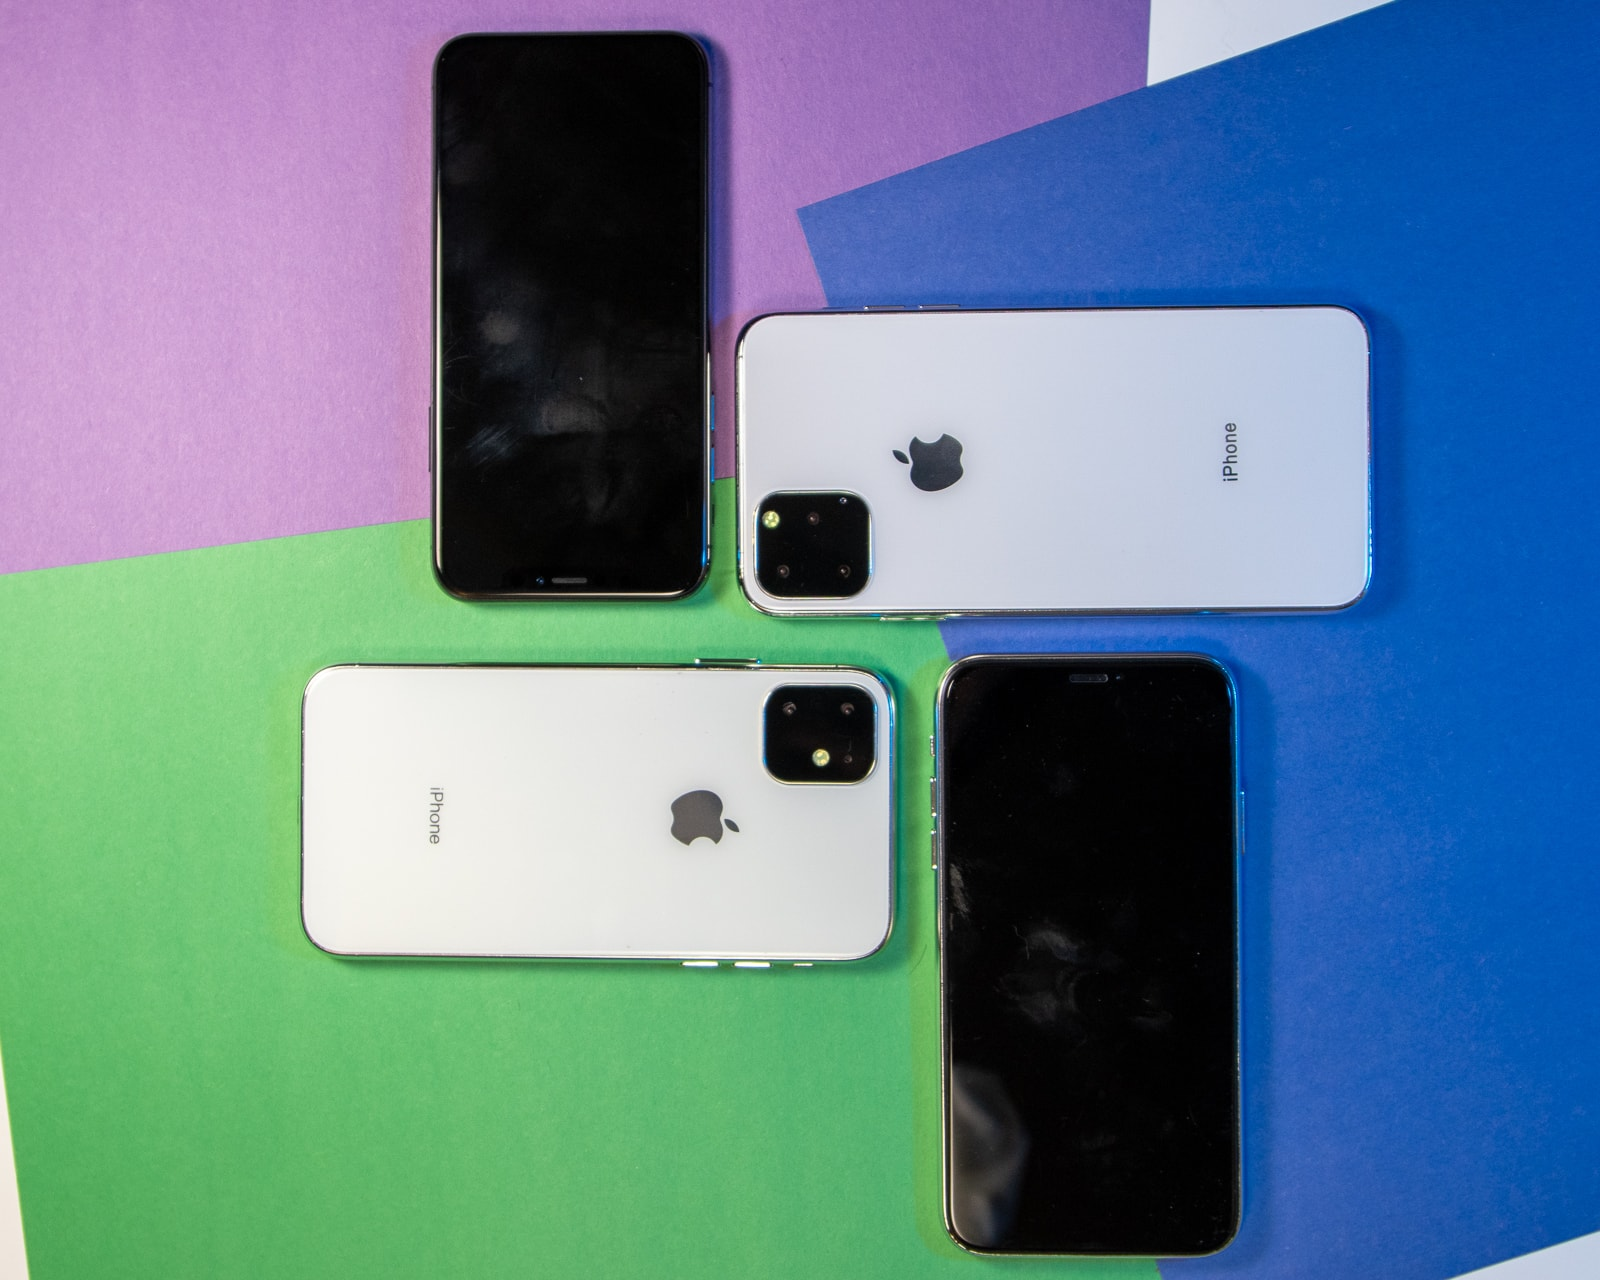 iPhone 10 and iPhone 11 models on colorful background